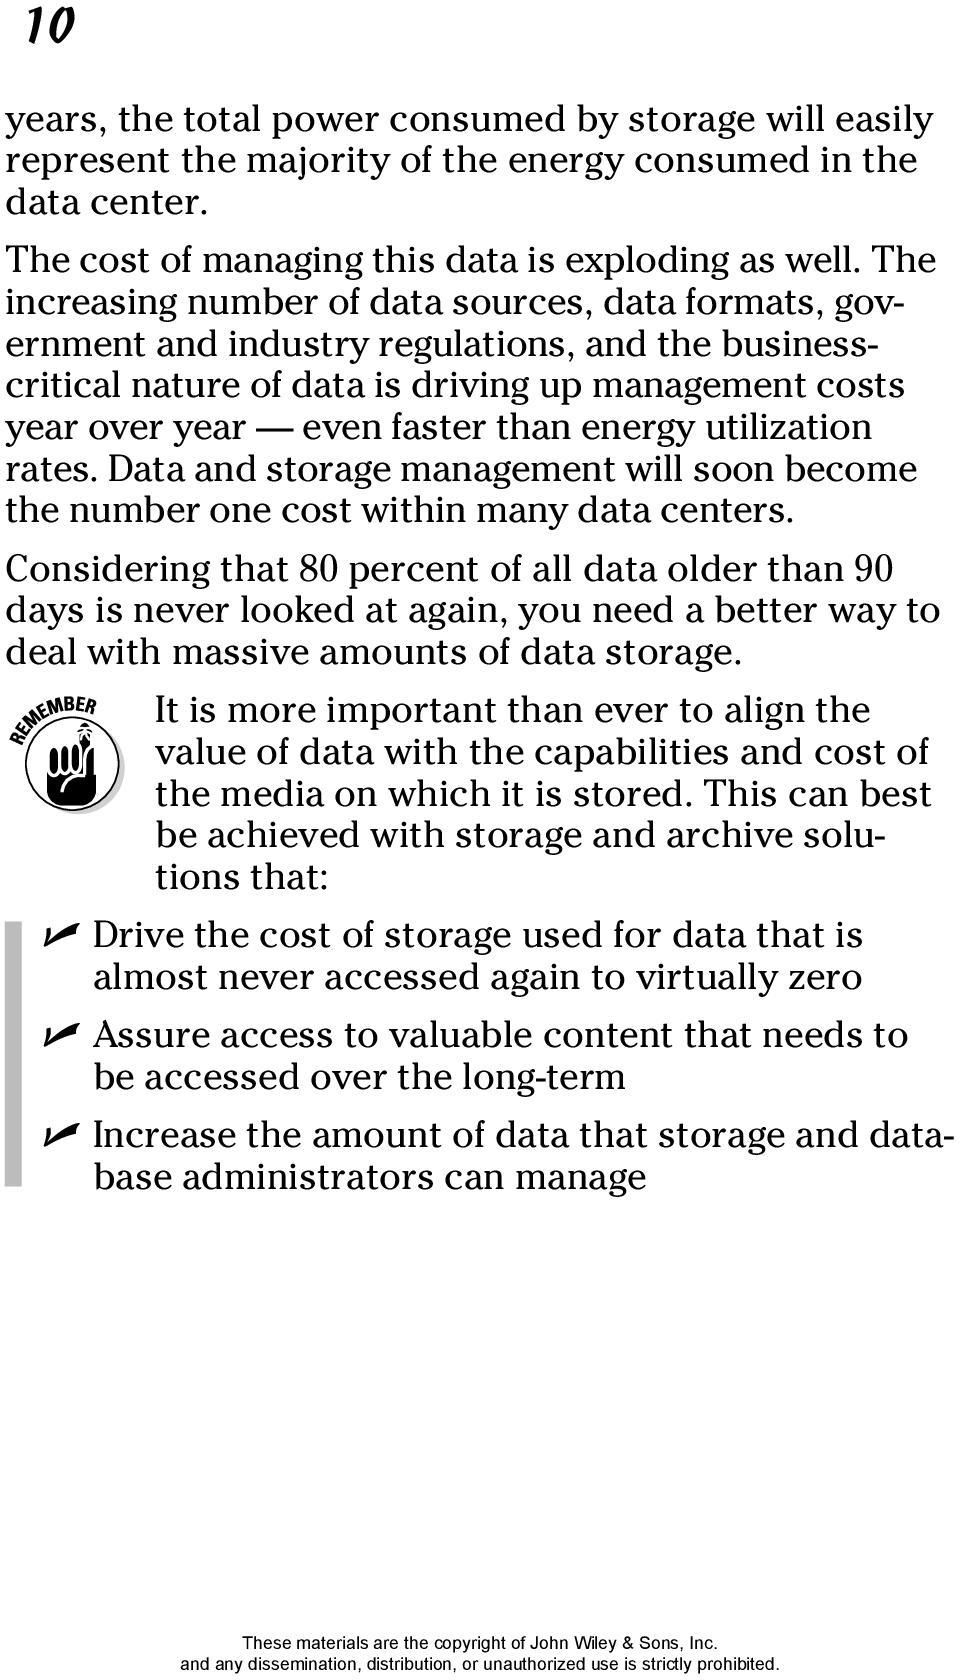 utilization rates. Data and storage management will soon become the number one cost within many data centers.